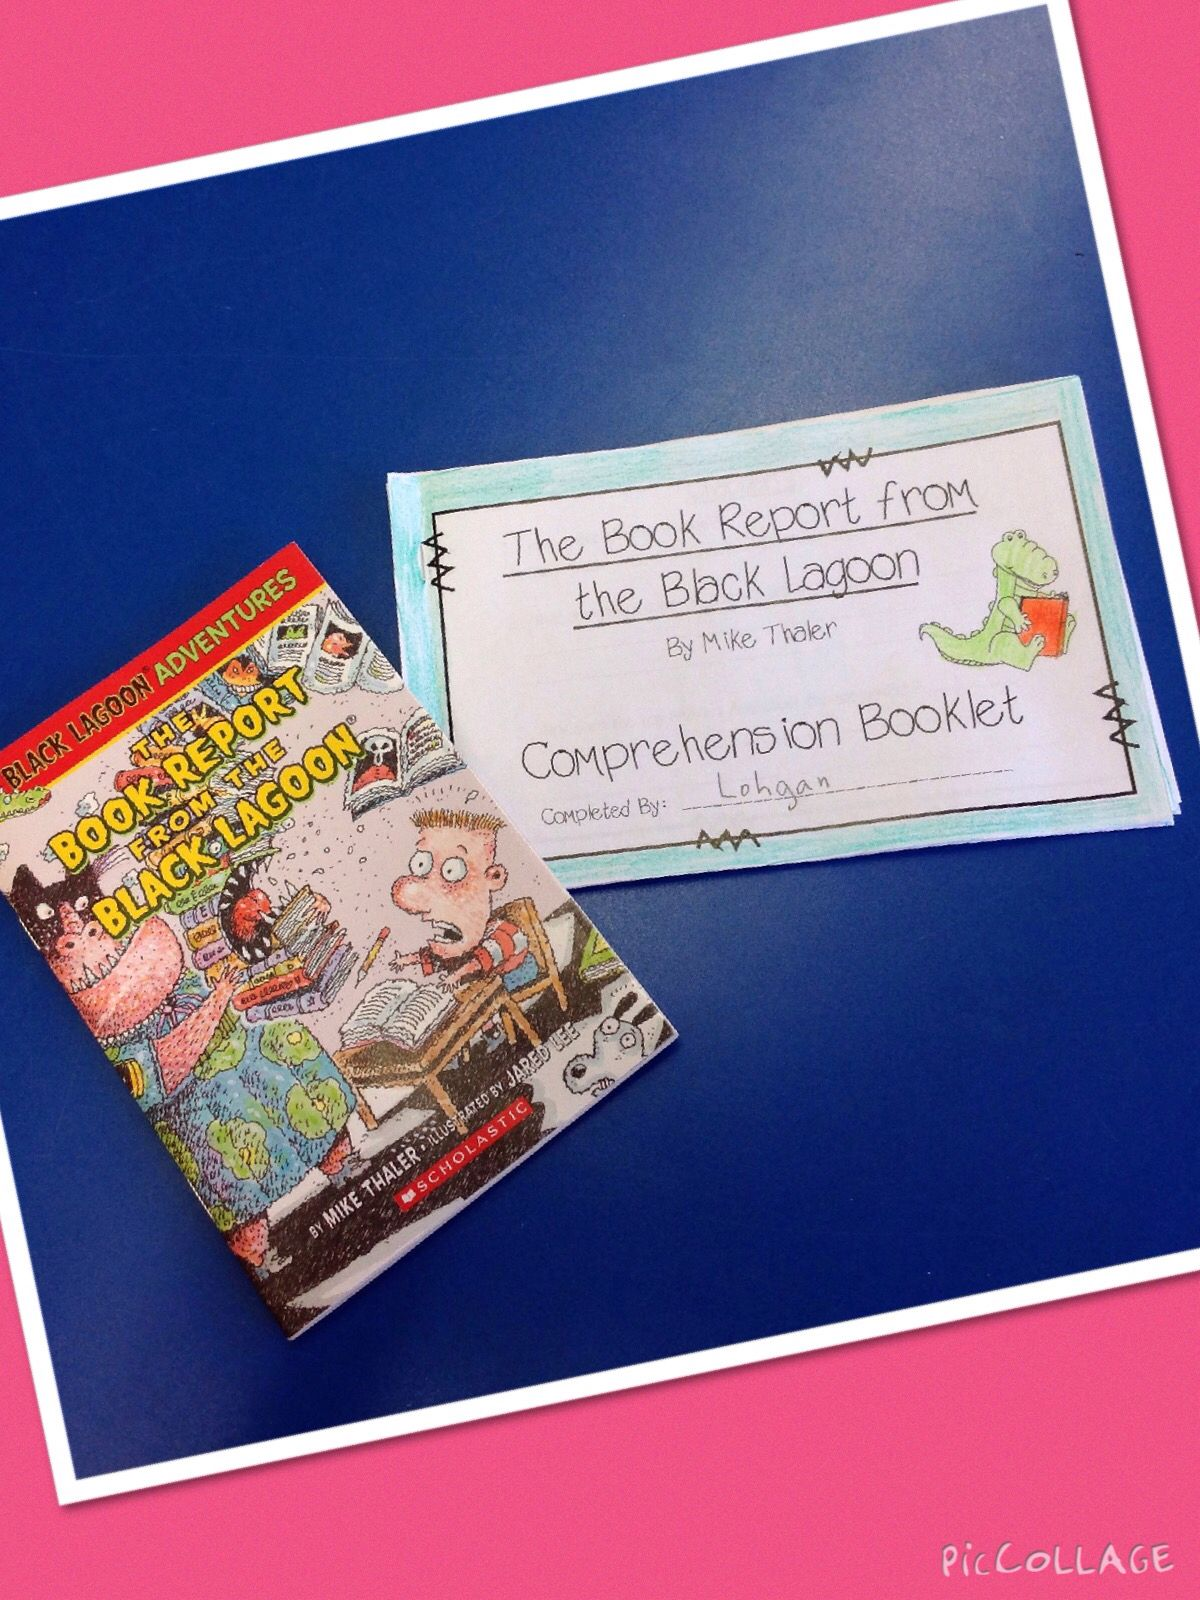 The book report from the black lagoon activities